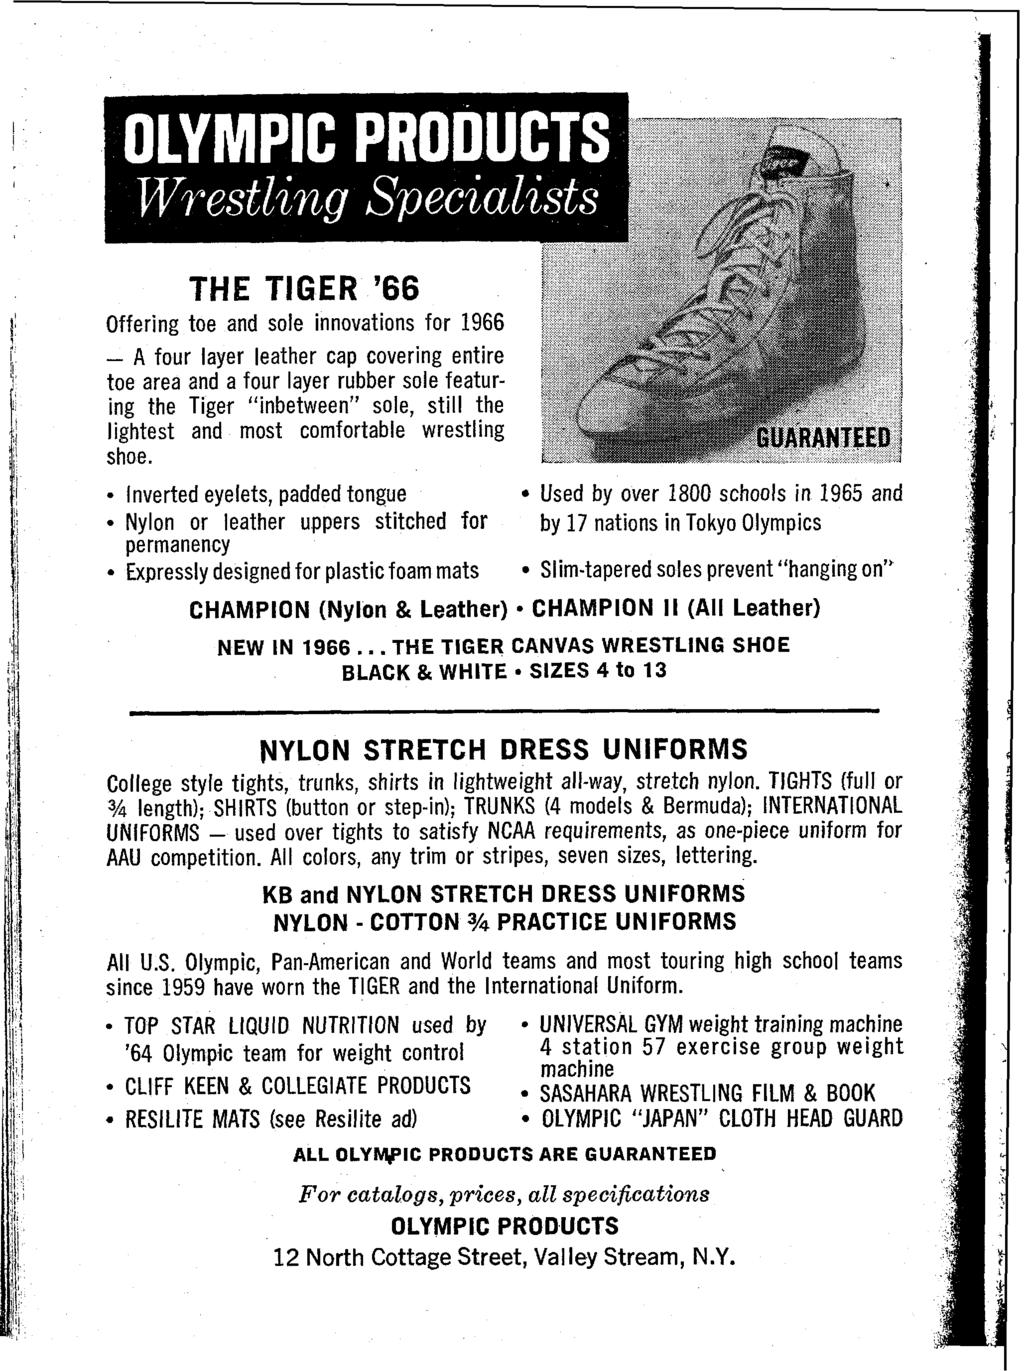 "THE TIGER '66 Offering toe and sole innovations for 1966 - A four layer leather cap covering entire toe area 2nd a four layer rubber sole featuring the Tiger ""inbetween"" sole, still the lightest and"